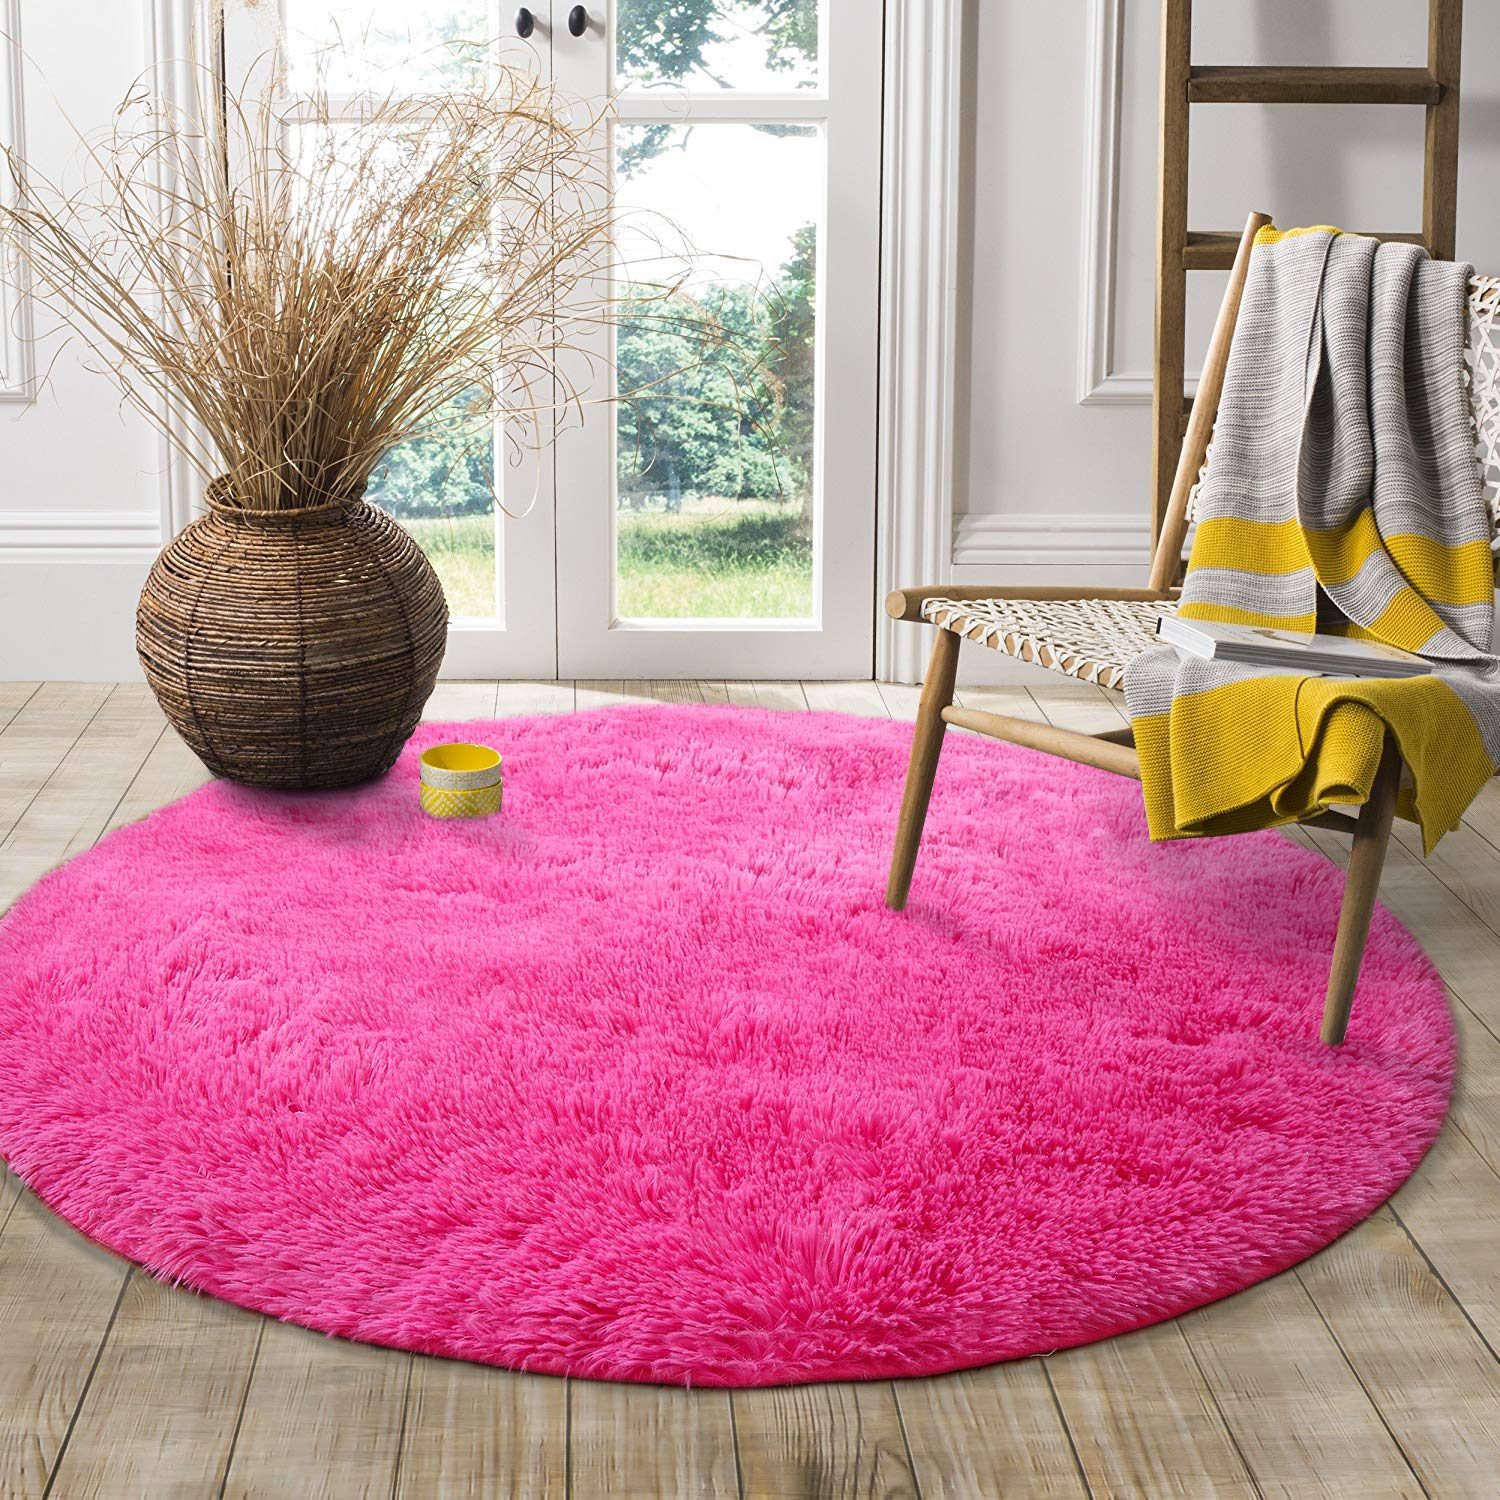 LOCHAS Round Area Rugs Super Soft Smooth Rugs Living Room Carpet Bedroom Rug for Children Play Solid Home Decorator Floor Rug and Carpet 4-Feet (Hot Pink)